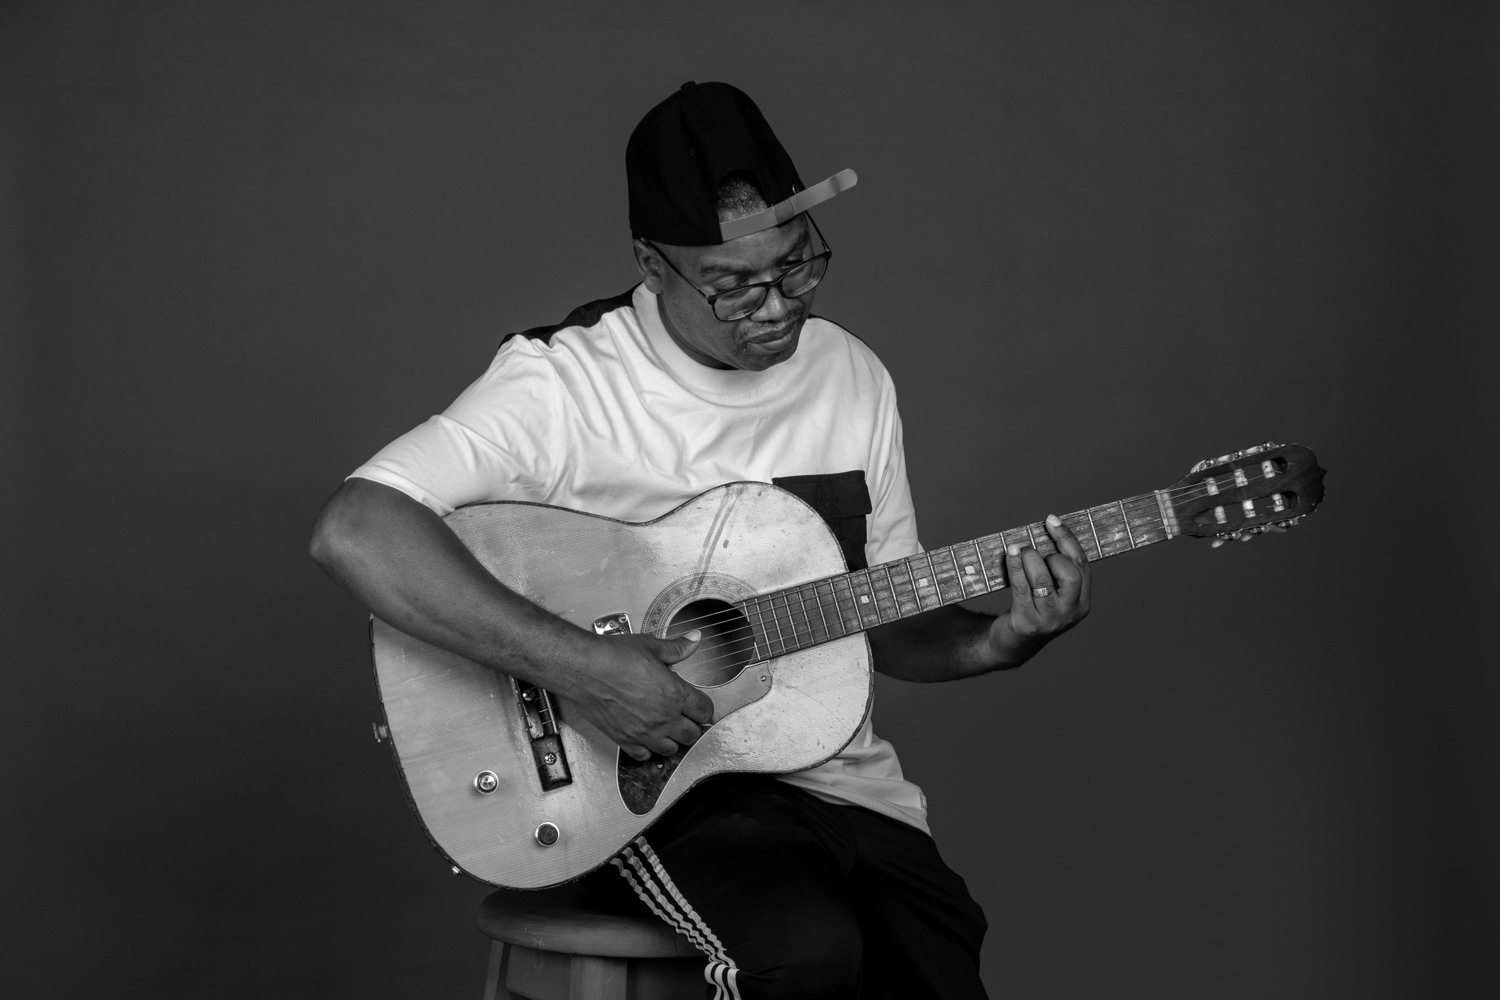 Crafford Productions Musician Headshot Photography